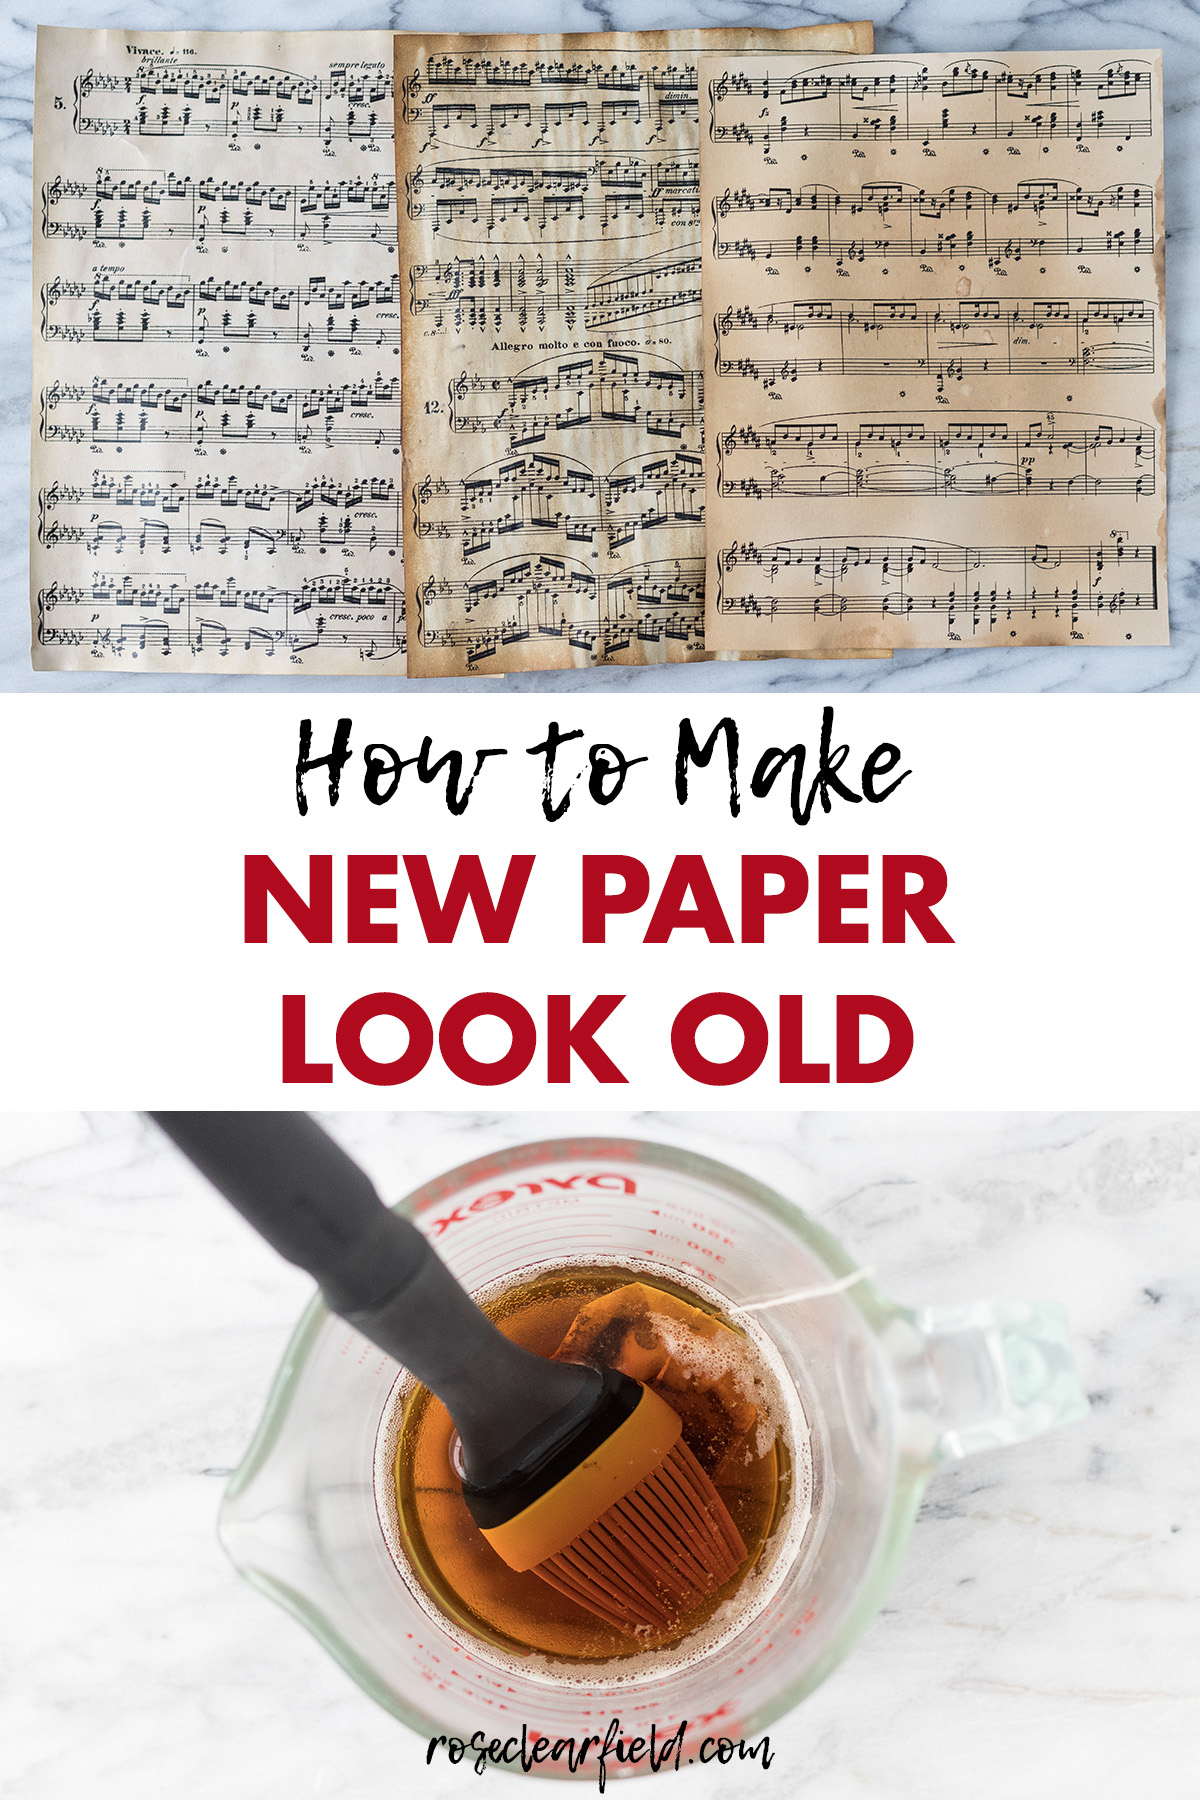 How to Make New Paper Look Old